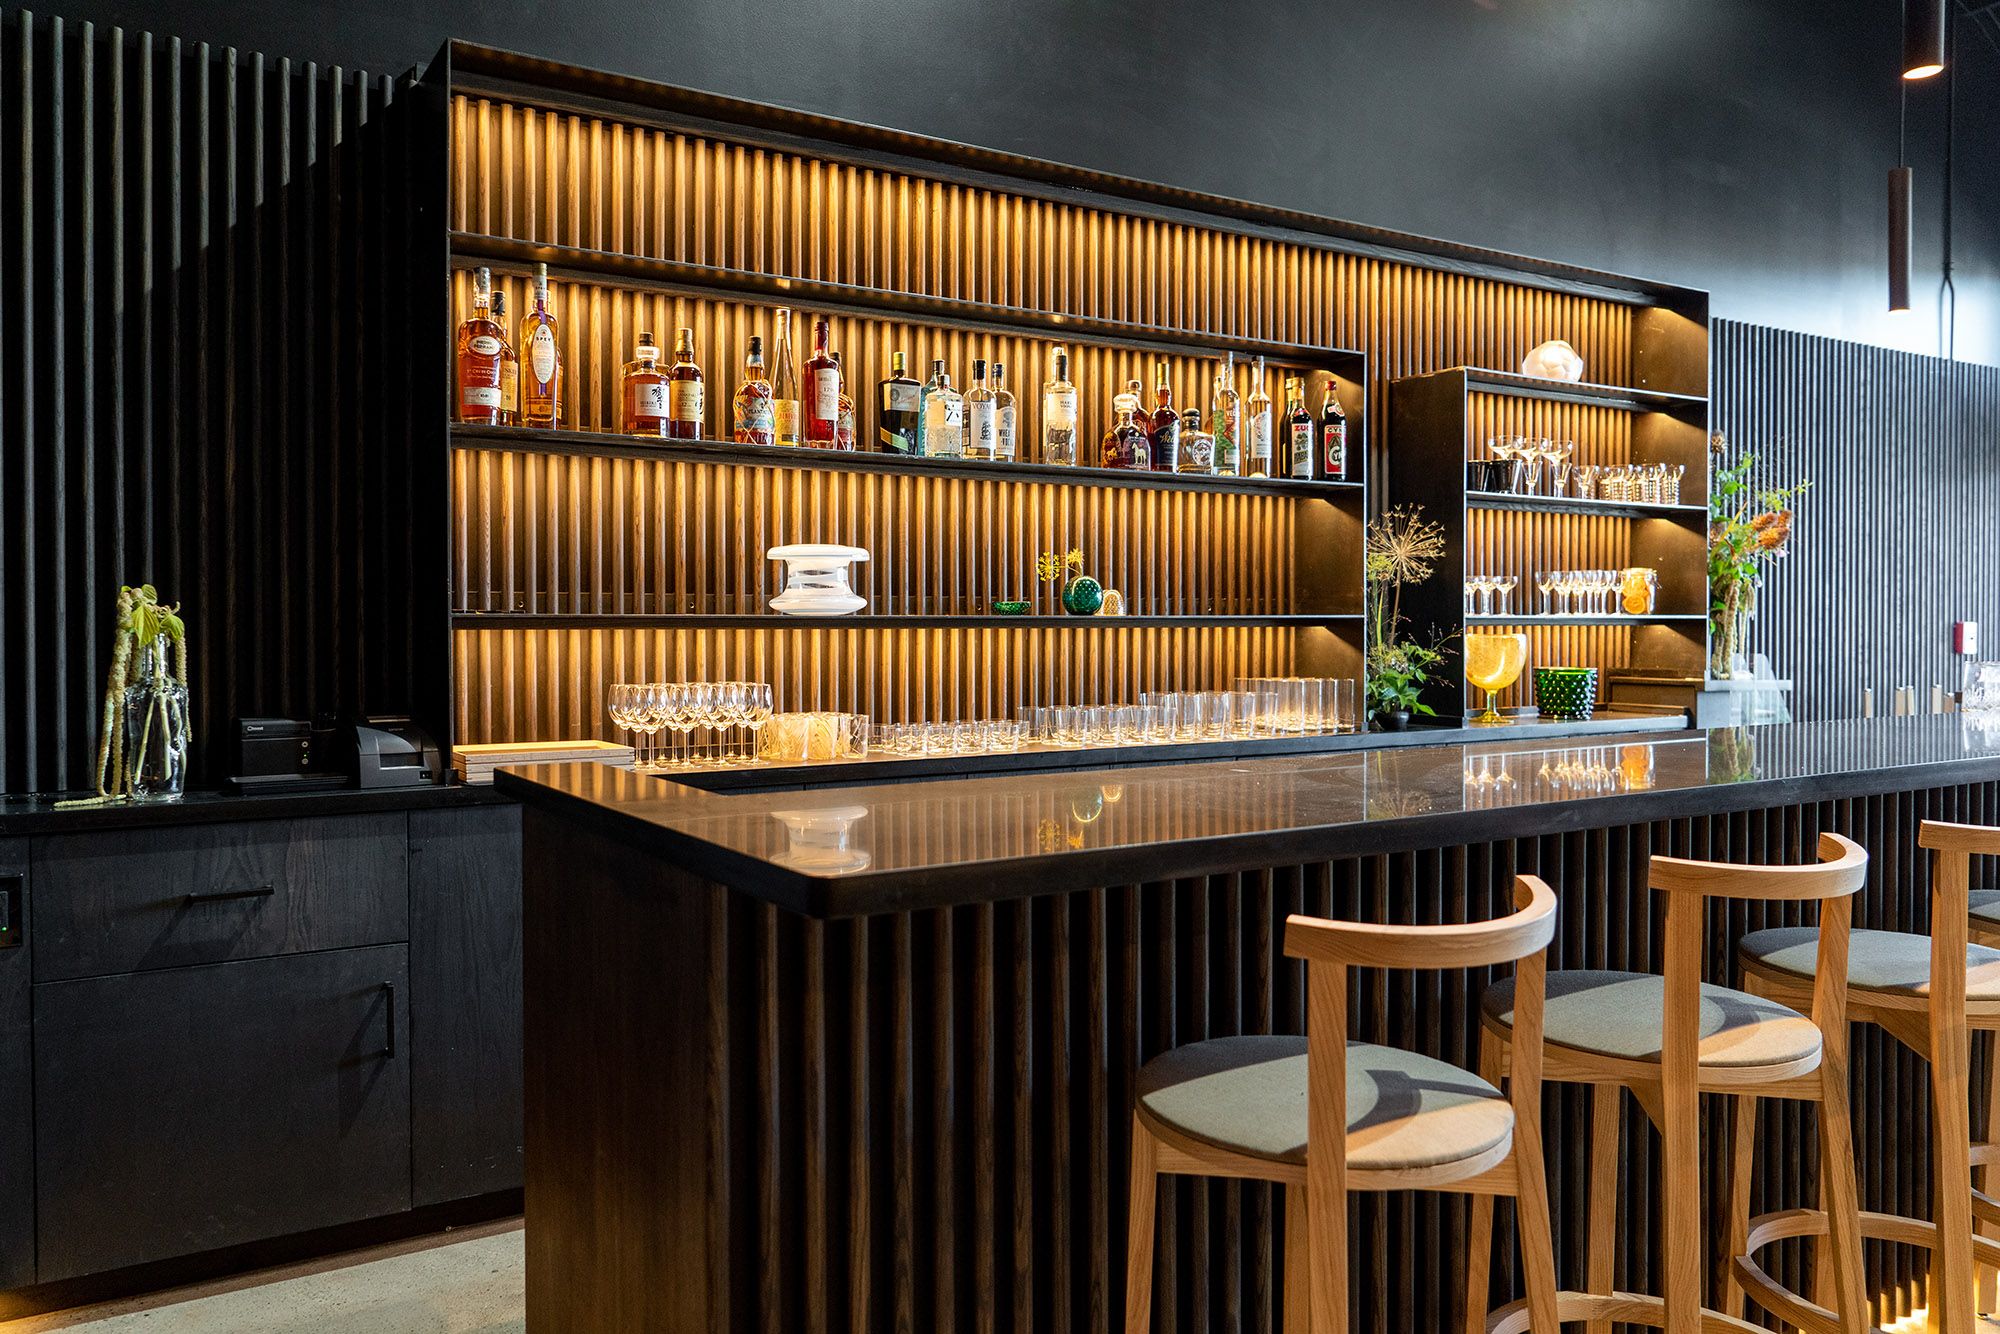 The bar at Tomo, lined with bottles and glasses, with orange accent lighting and dark paint on the walls.